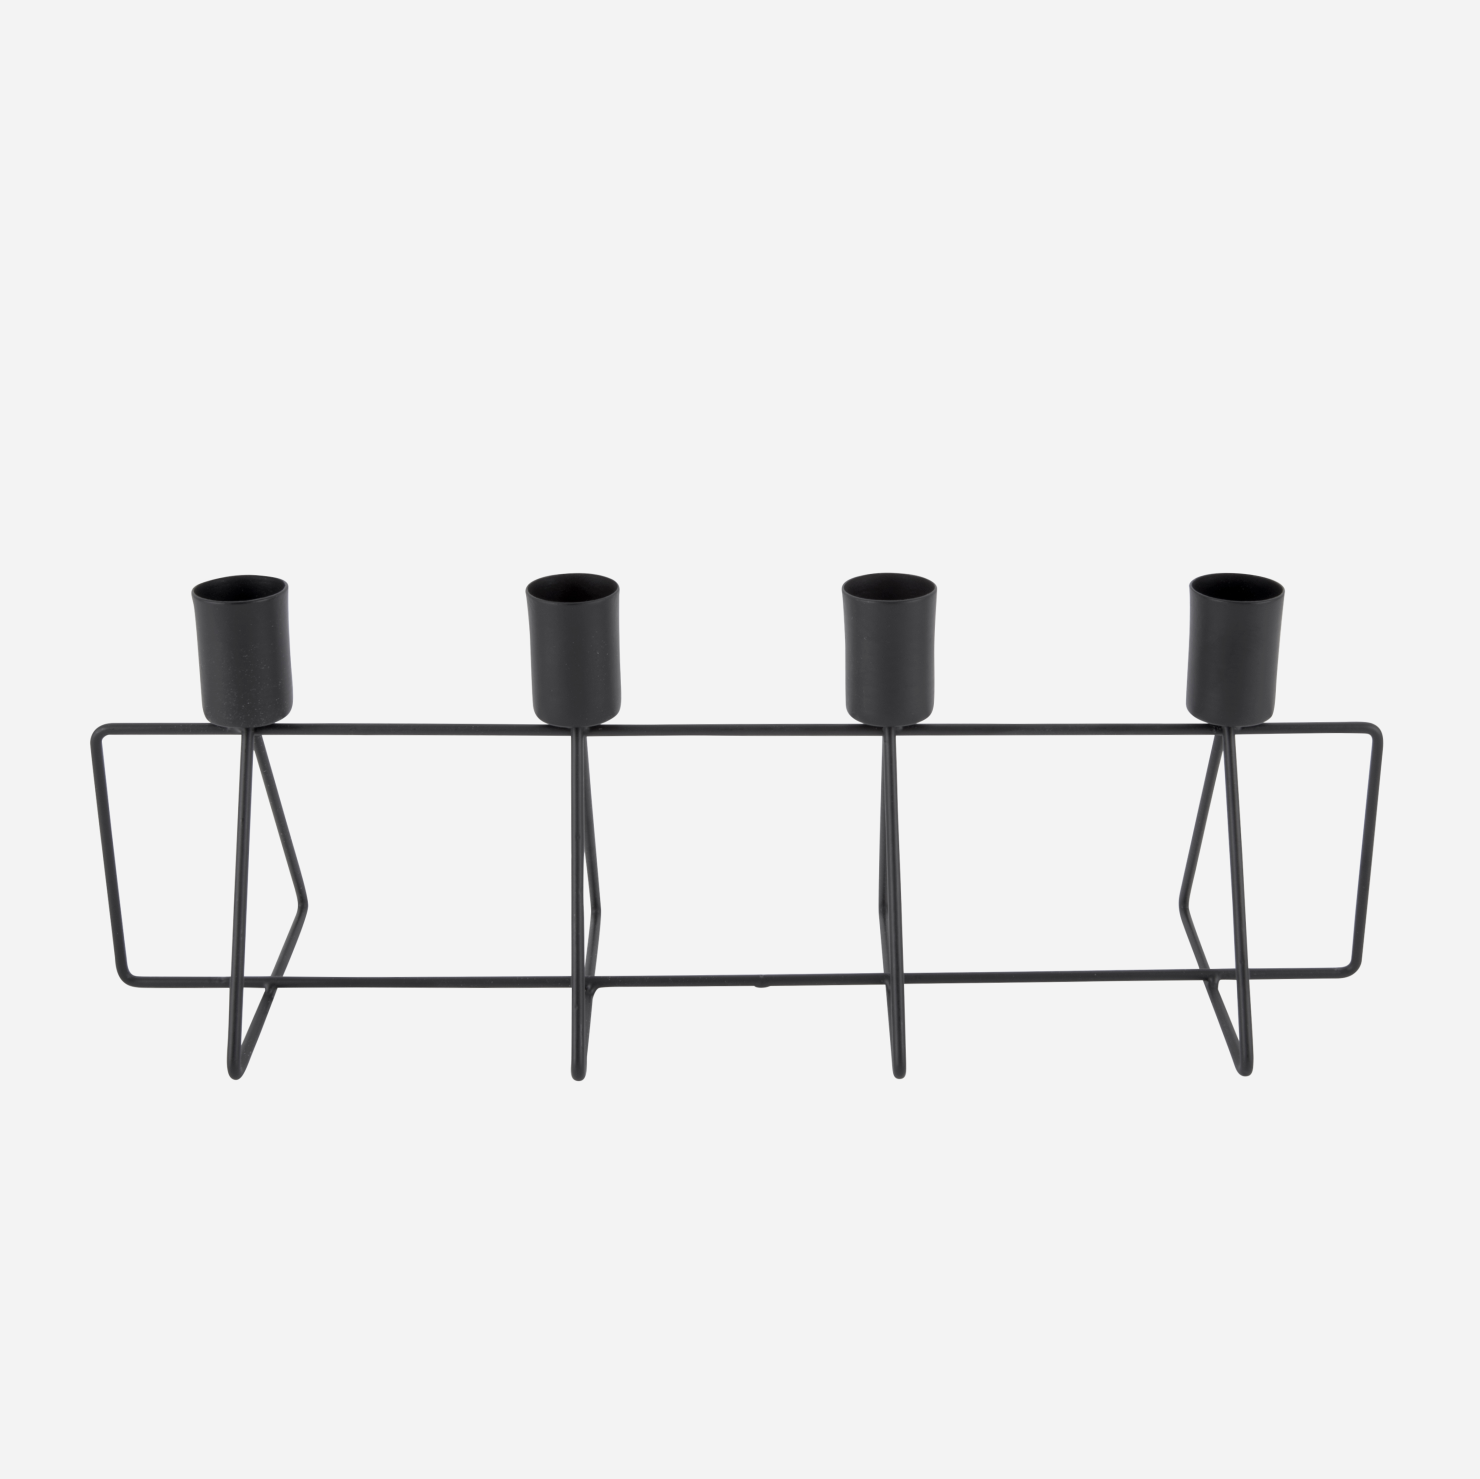 Eld Candle Holder - Black